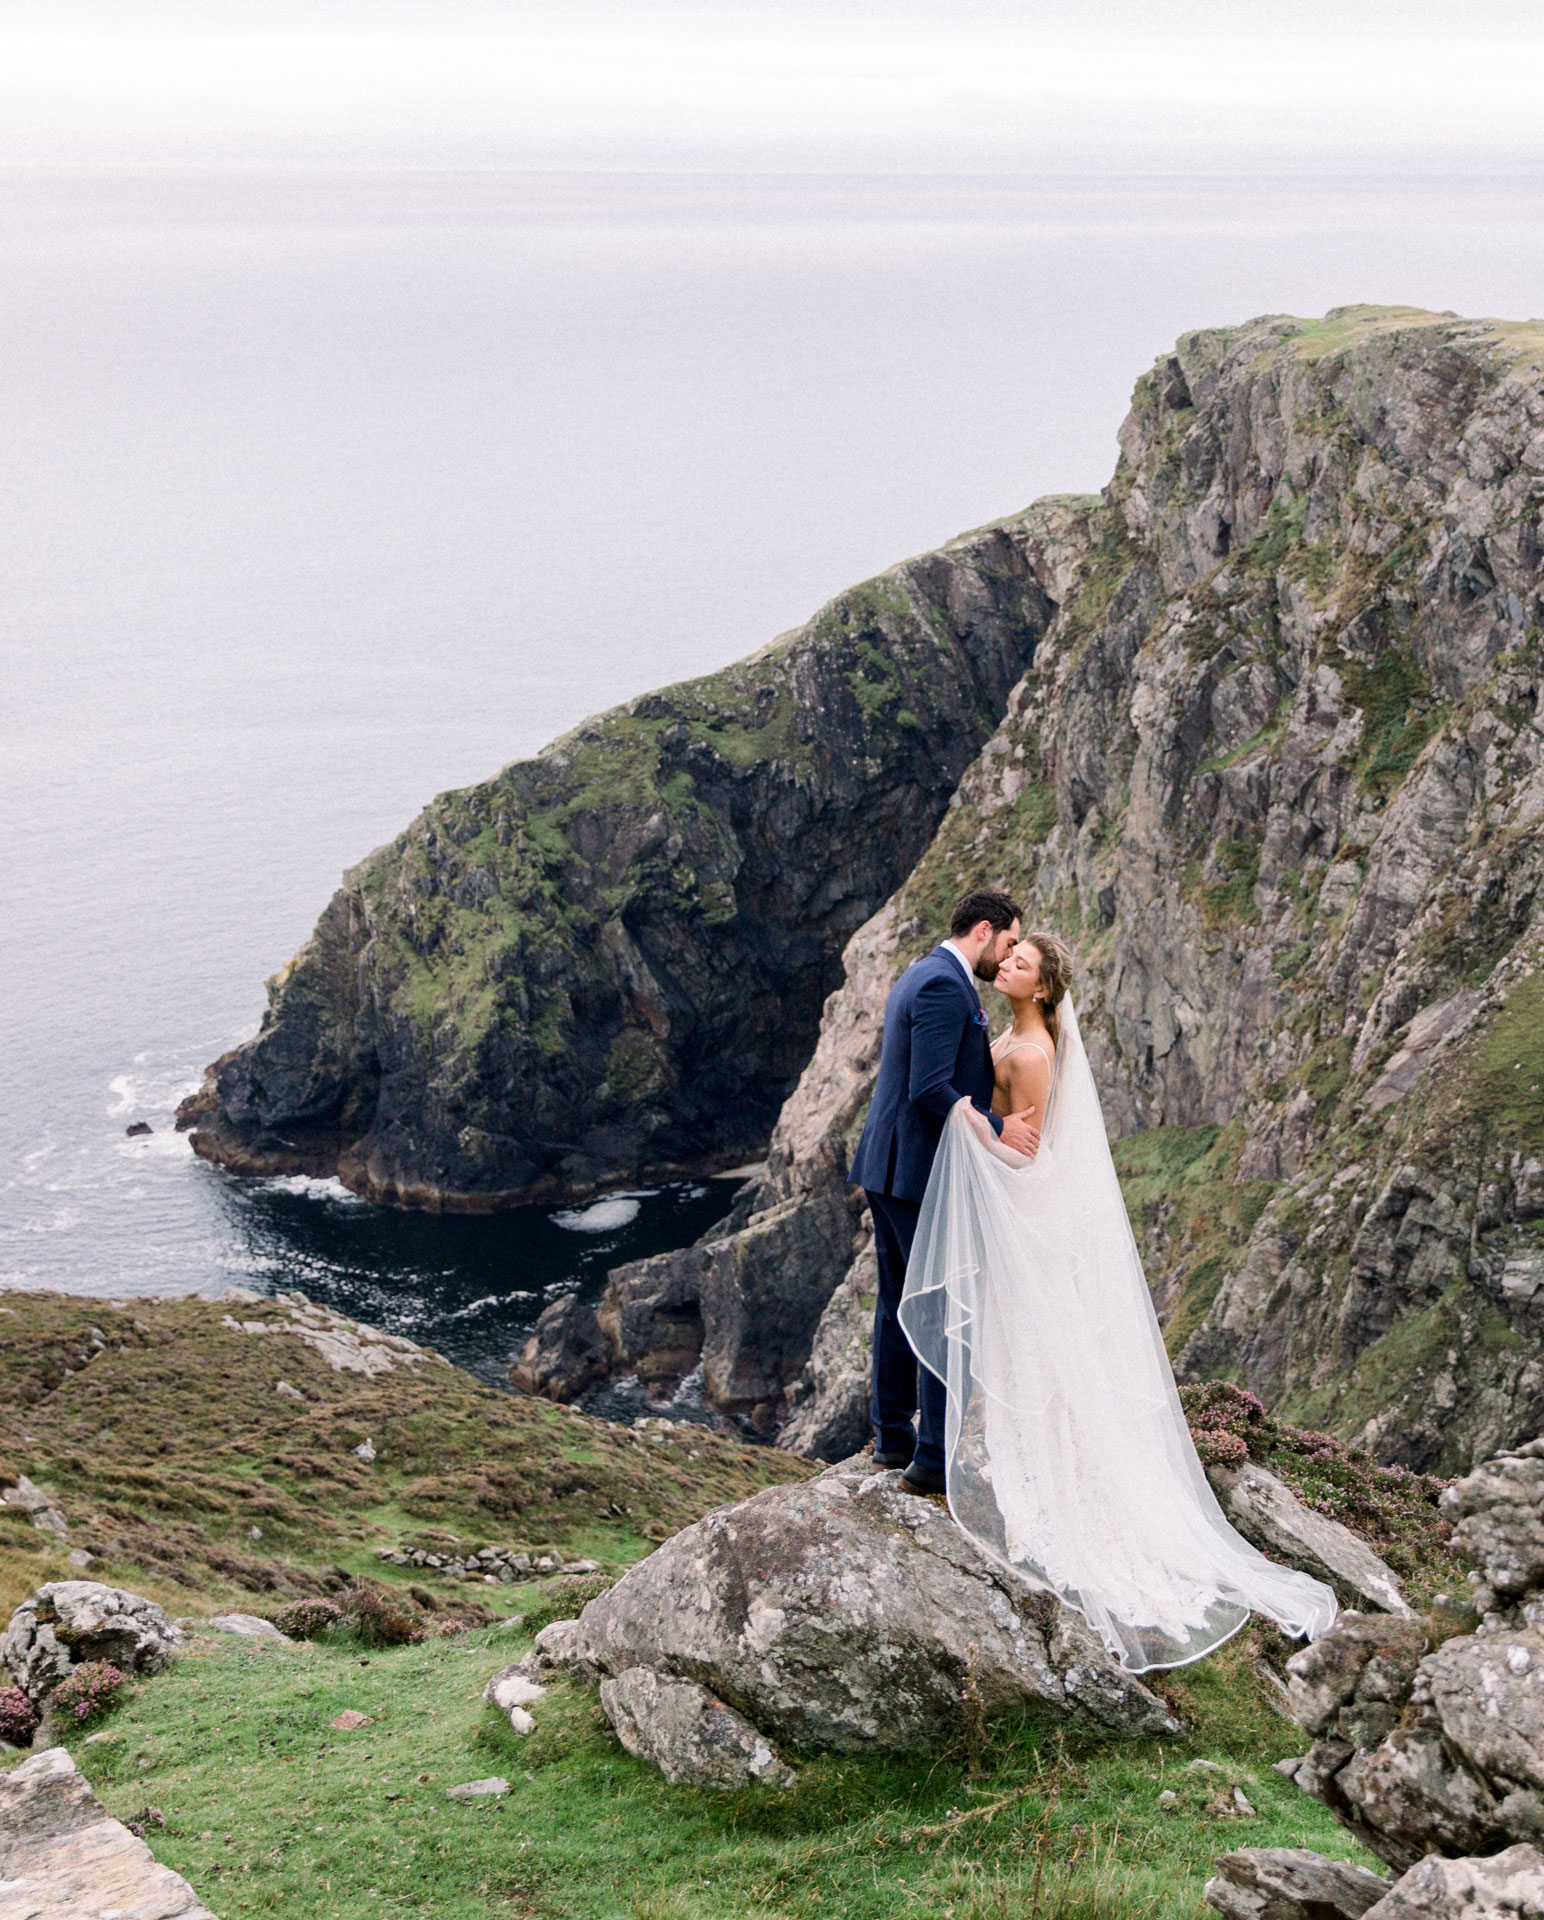 Bride and groom overlooking a majestic Ireland bluff.